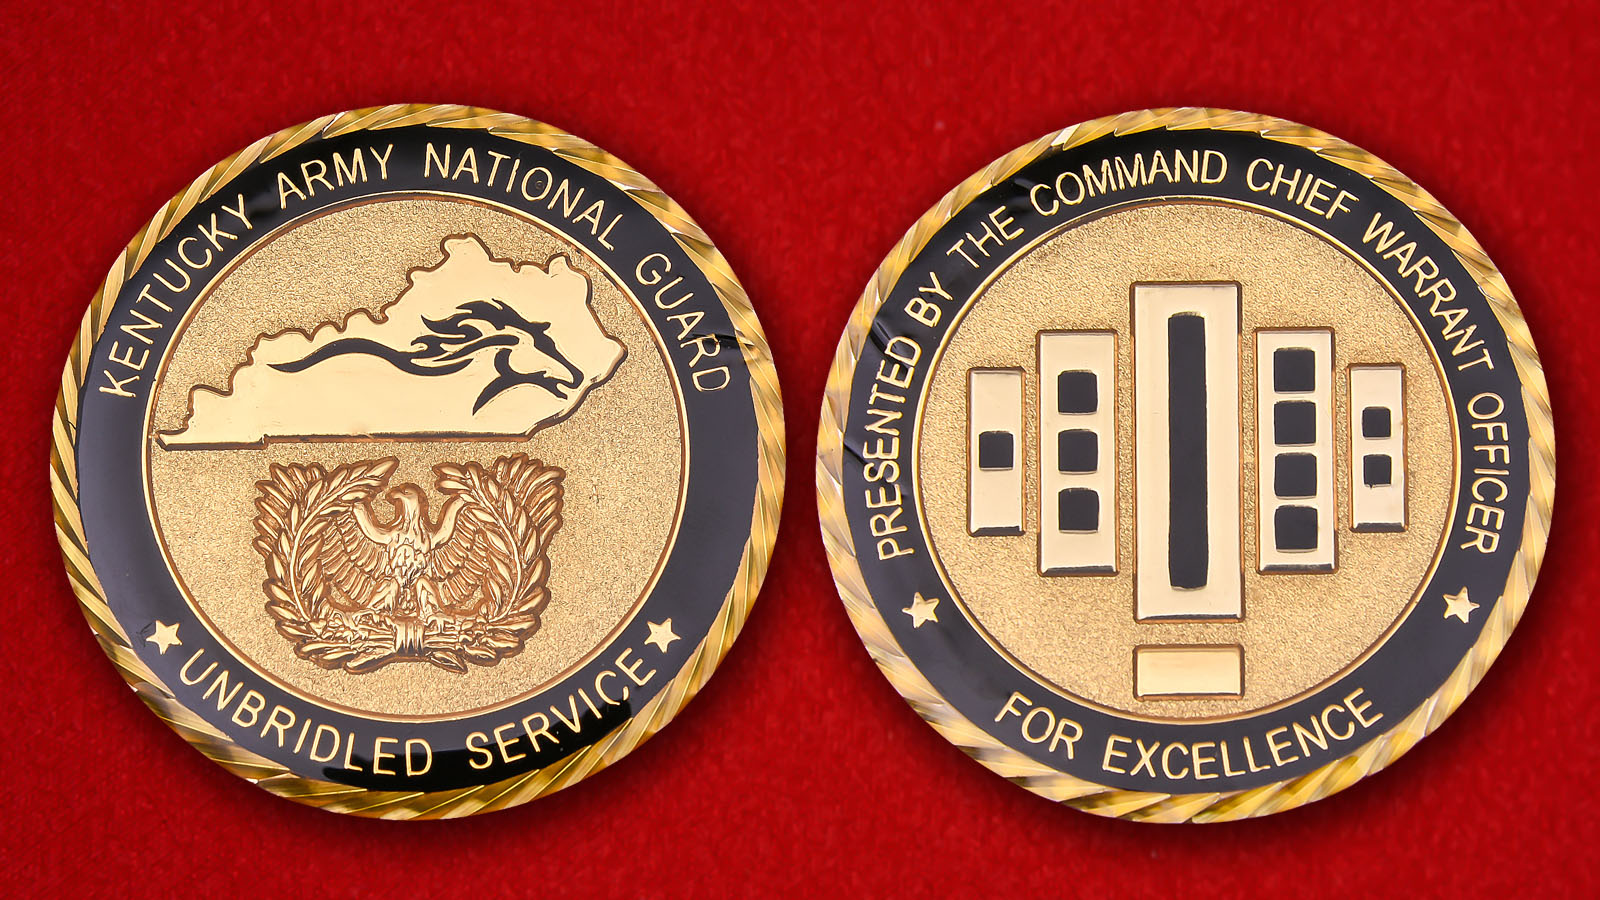 For Excellence presented the command chief warrant officer Kentucki Army National Guard Challenge Coin - obverse and reverse